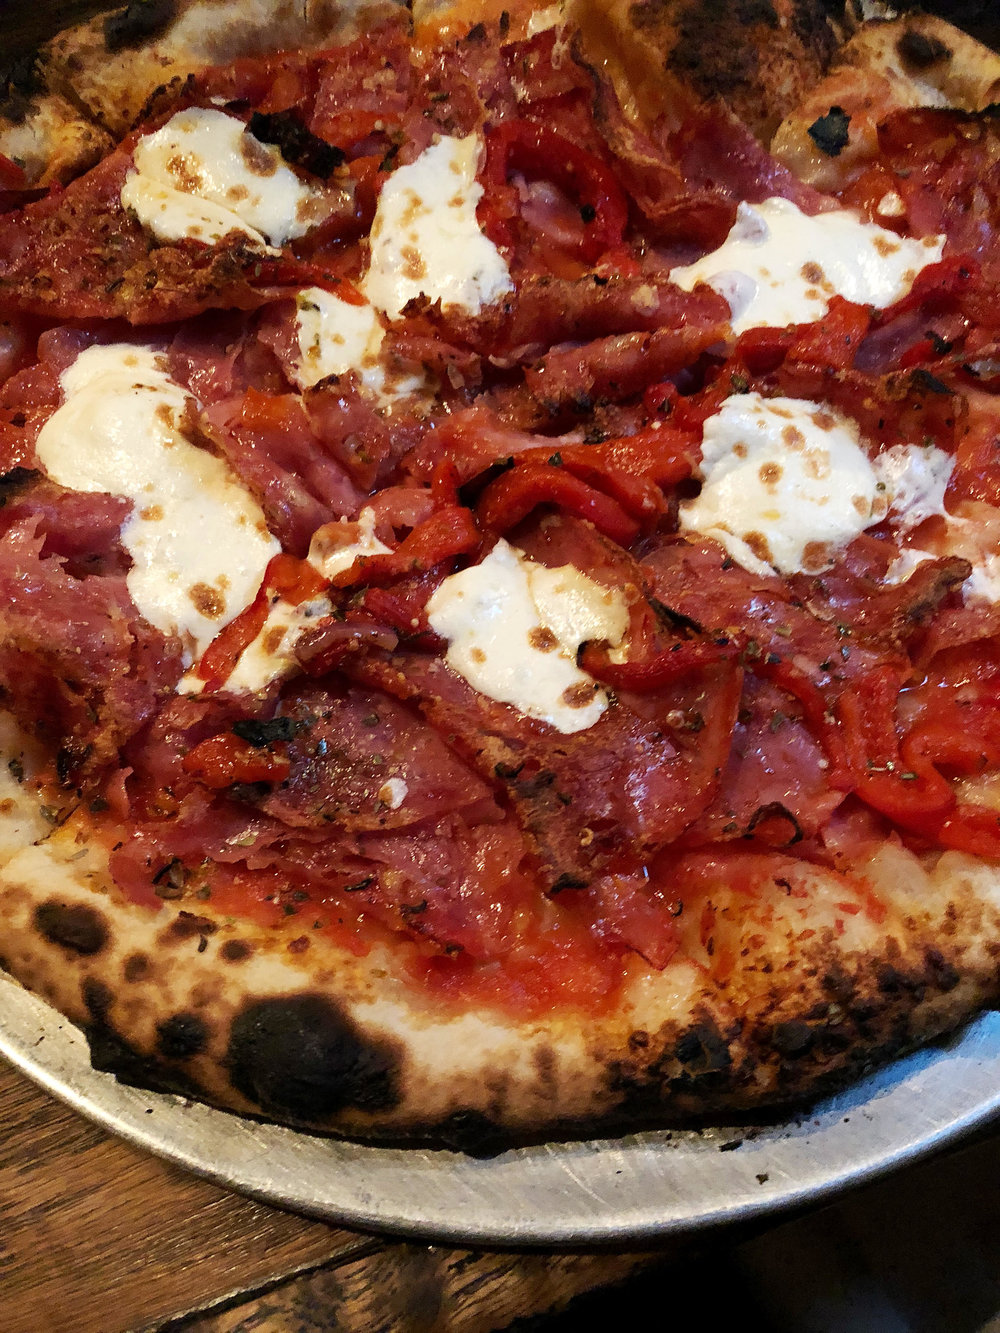 King Salami: san marzano tomato sauce, hot & sweet soppressata, finocchiona roasted red peppers, mozzarella